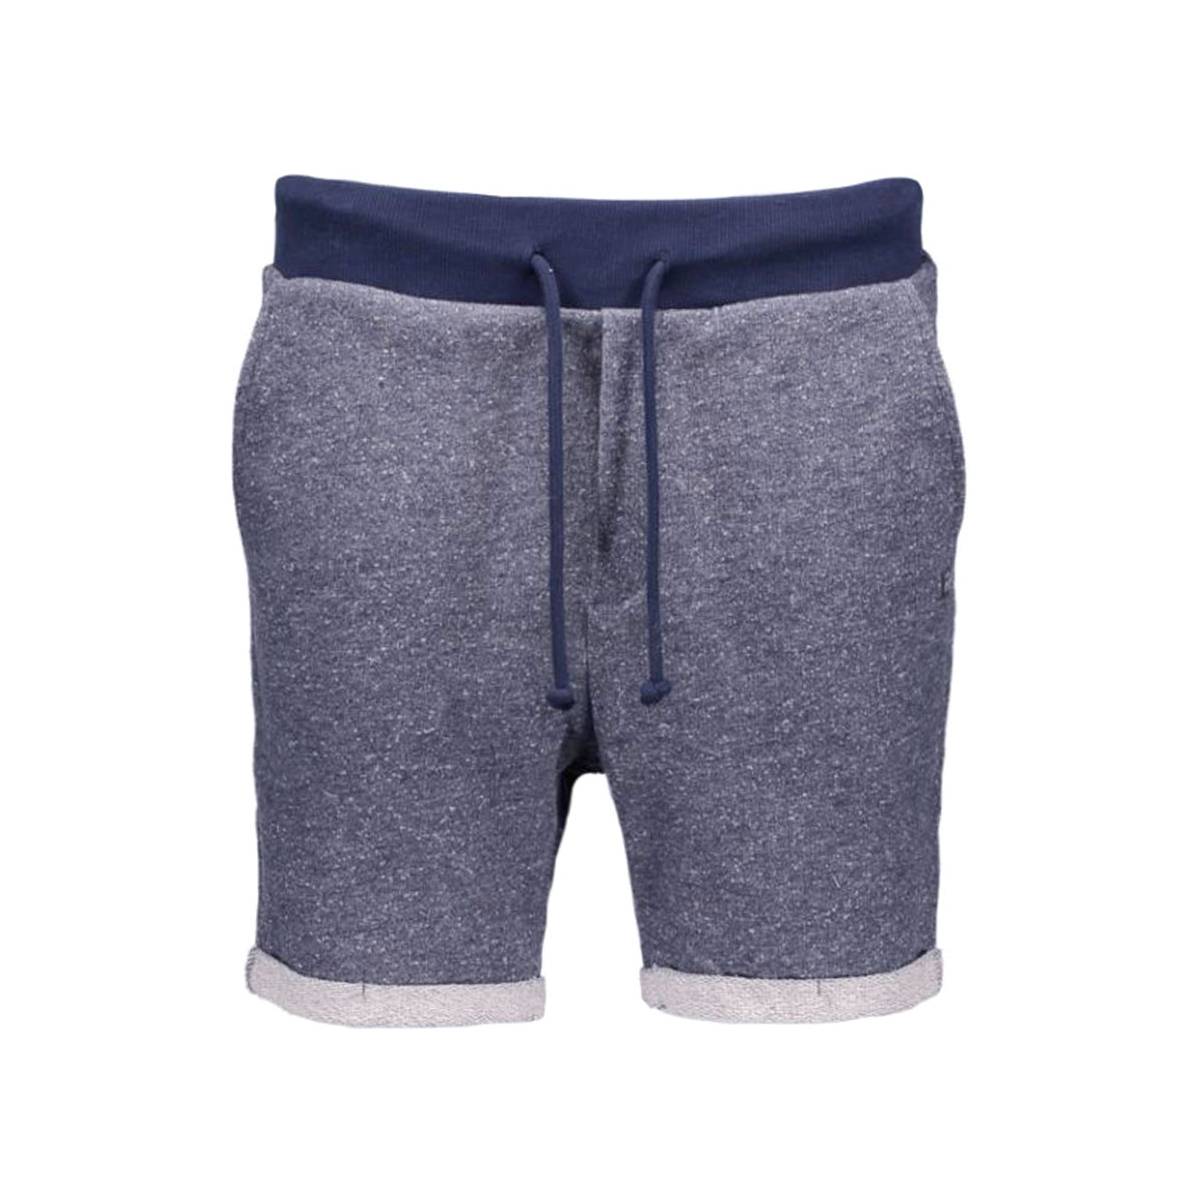 jjorboost sweat shorts 12104874 jack & jones korte broek navy blue